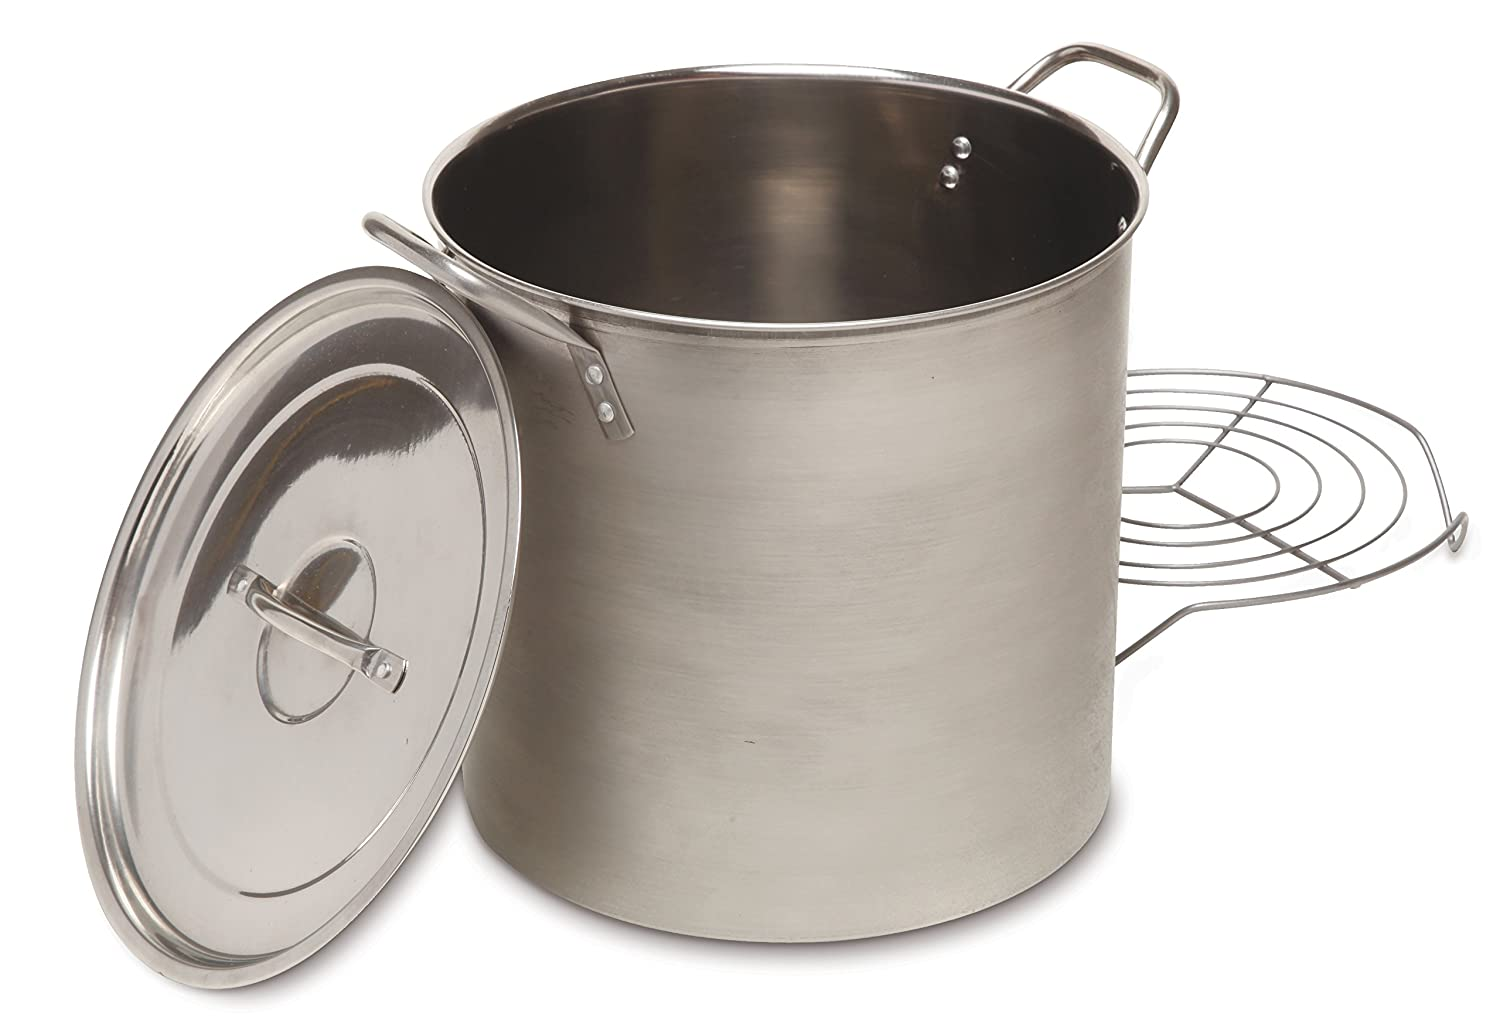 Heuck Classics Stainless Steel Tamale and Steamer Stock Pot, 16-Quart, Silver H36202-HL-1